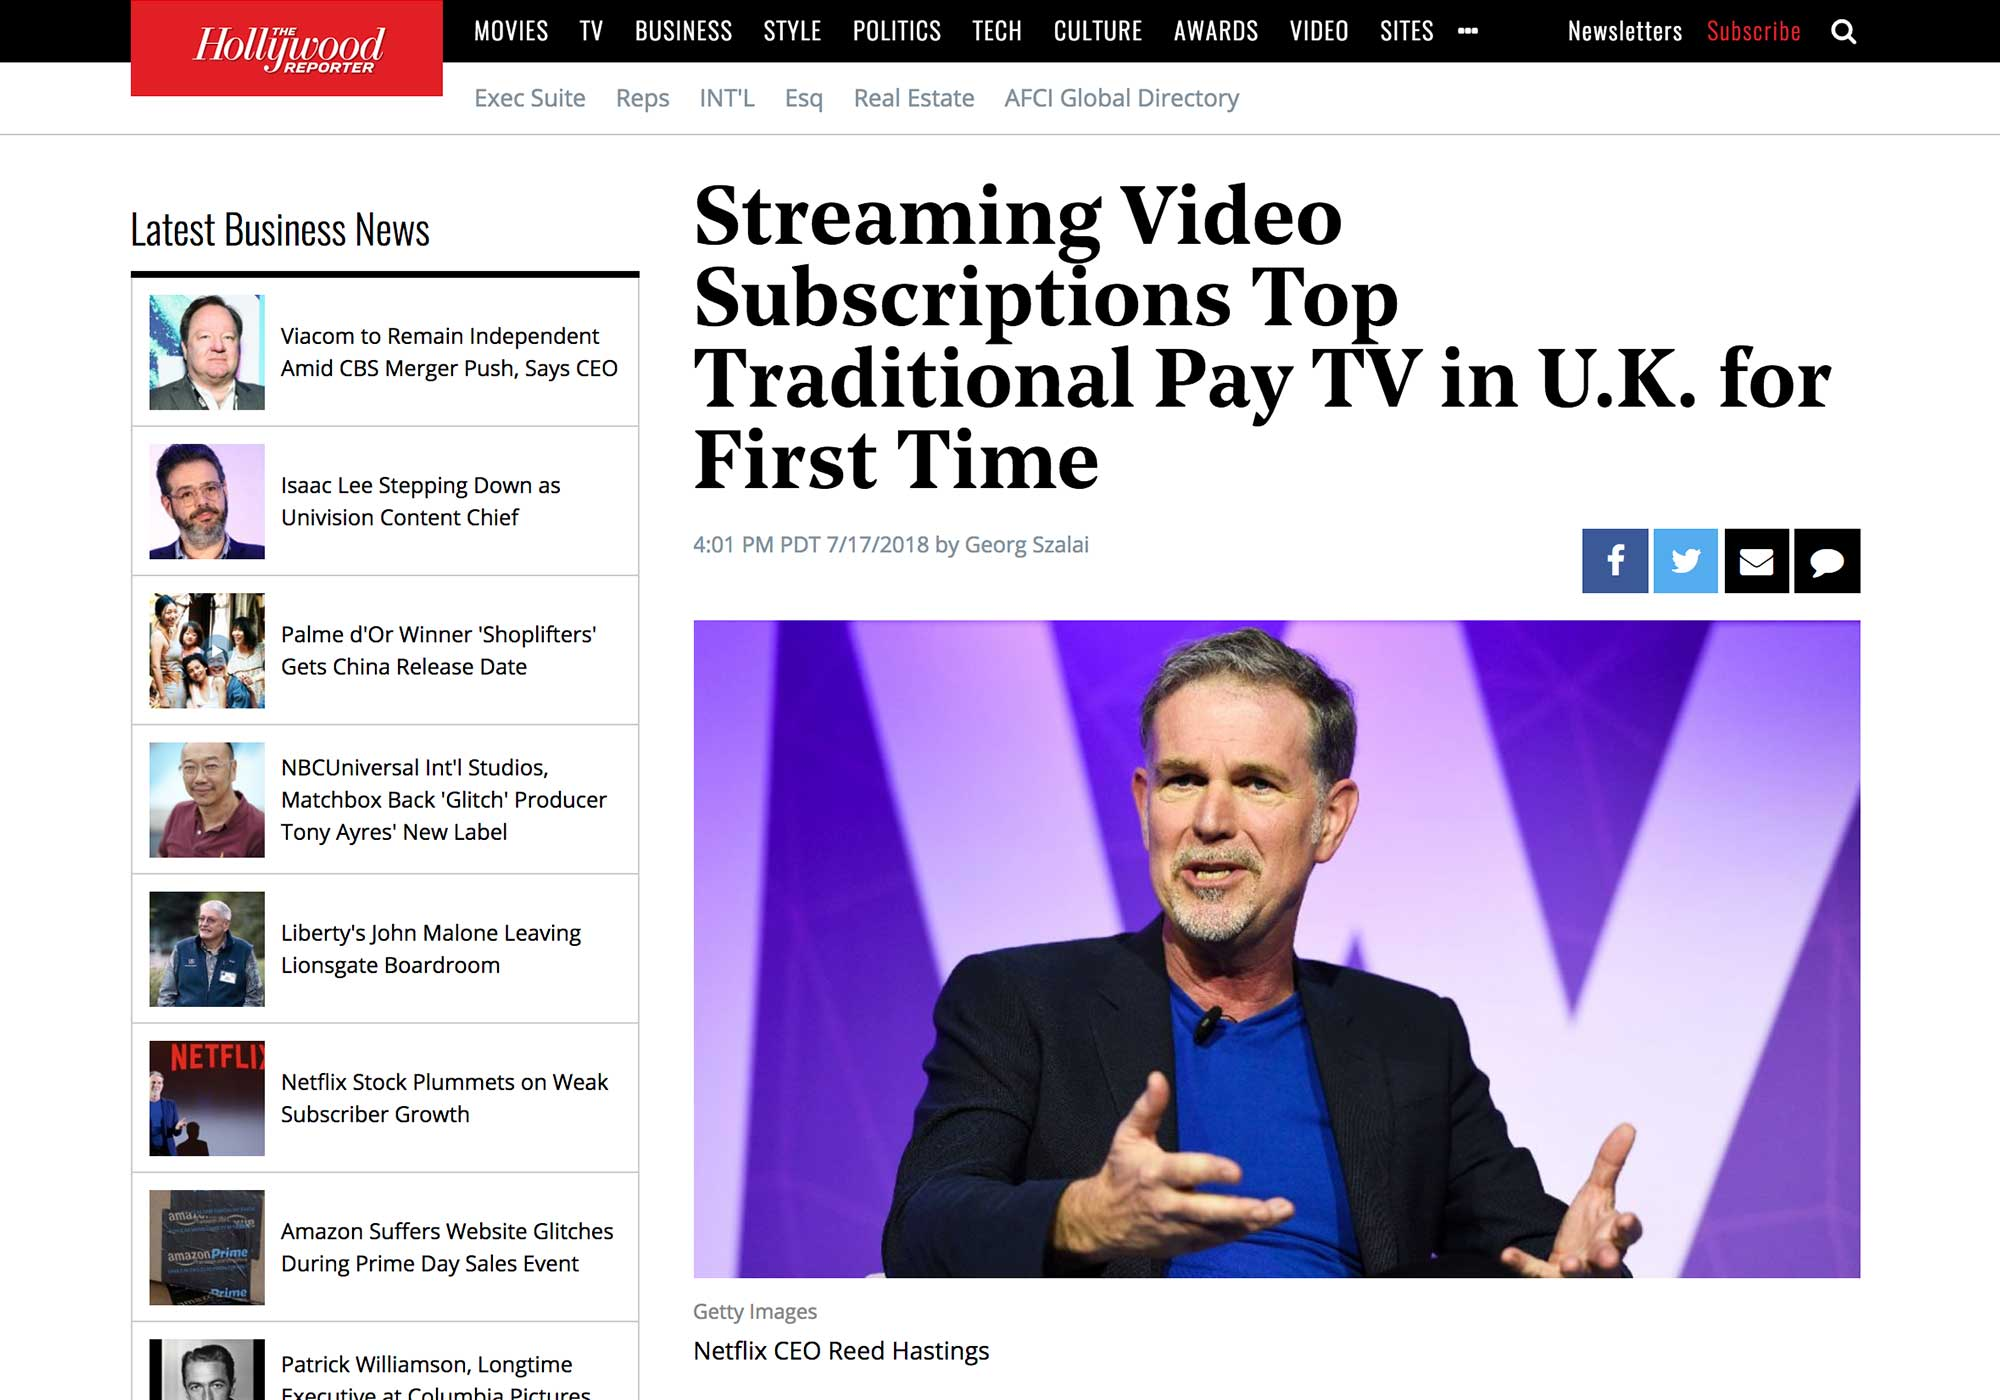 Fairness Rocks News Streaming Video Subscriptions Top Traditional Pay TV in U.K. for First Time